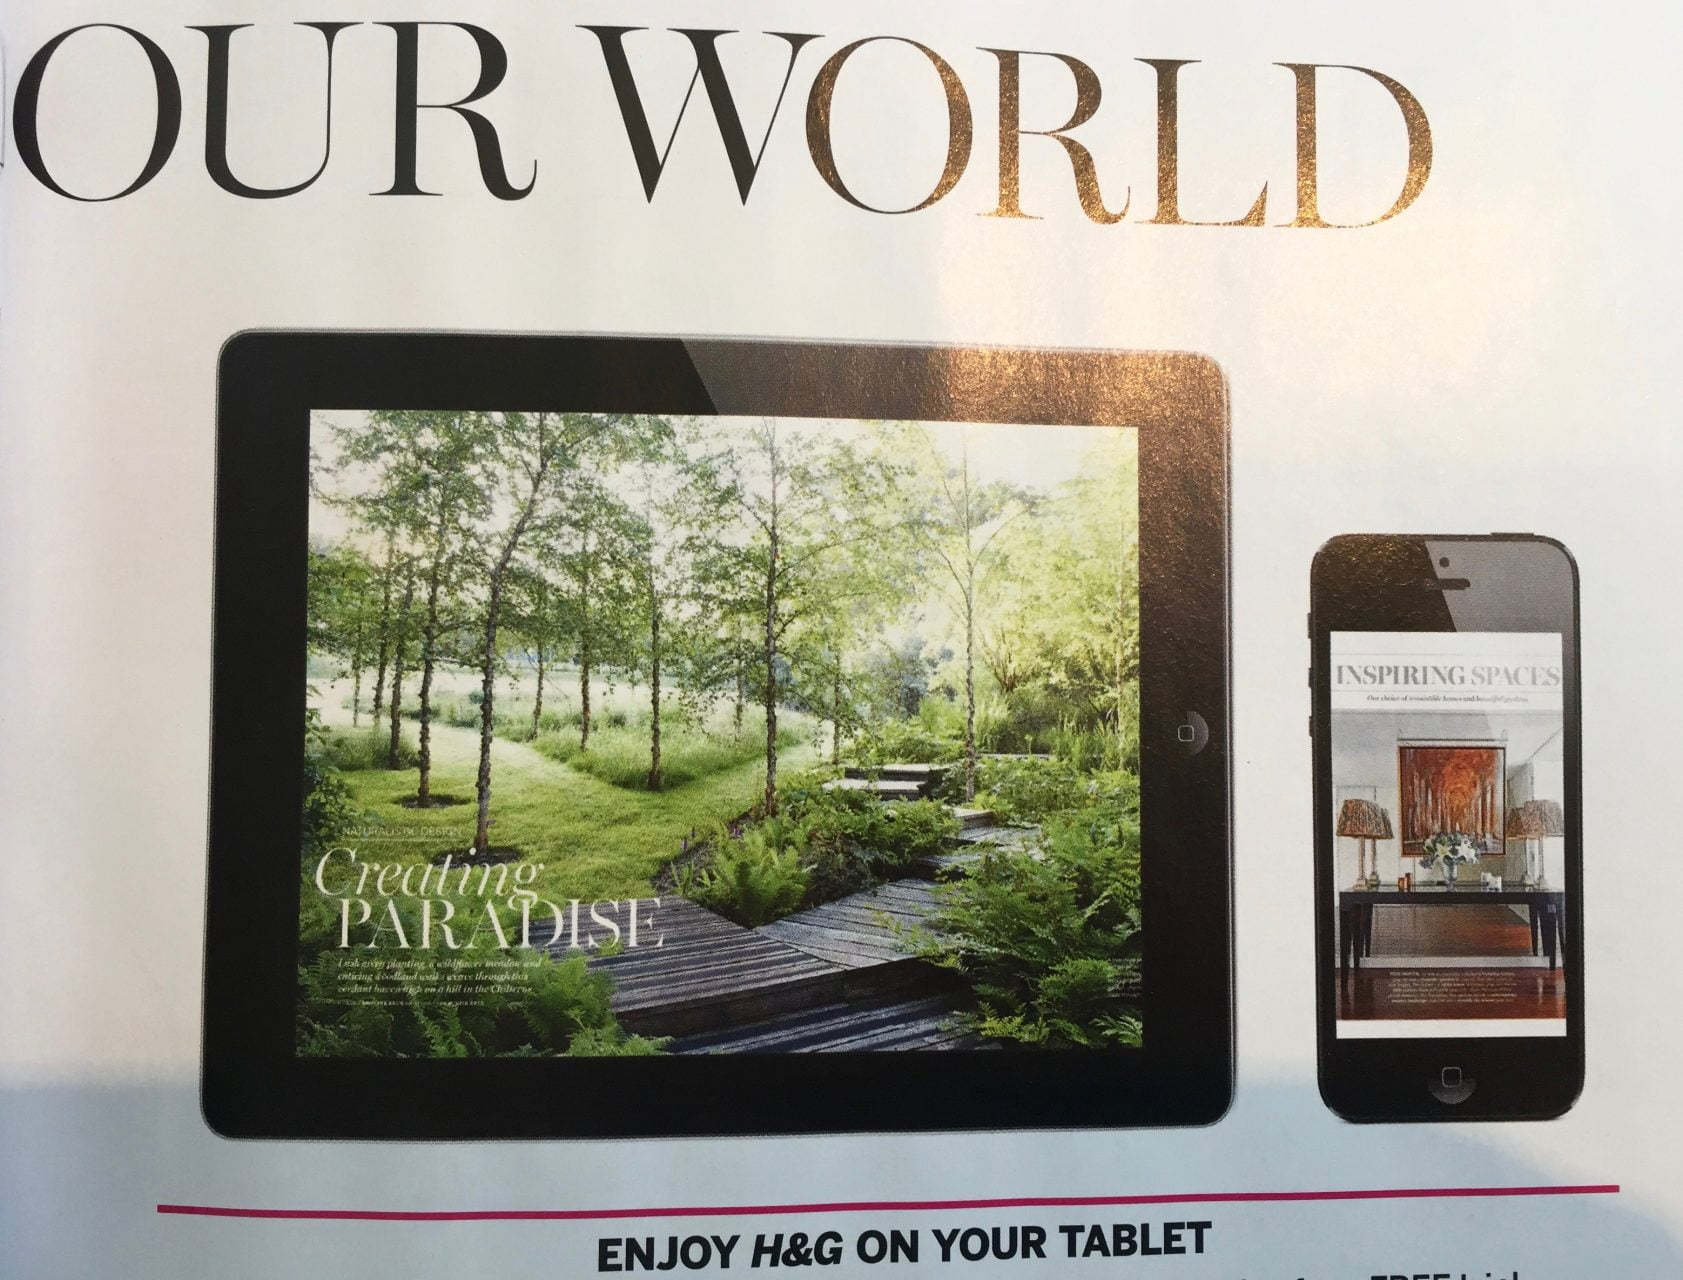 Homes & Gardens Magazine have used one of the images of Jan's garden to show how you can read their marine online & on mobile devices. It looks really good & is very flattering they chose this image over al the others